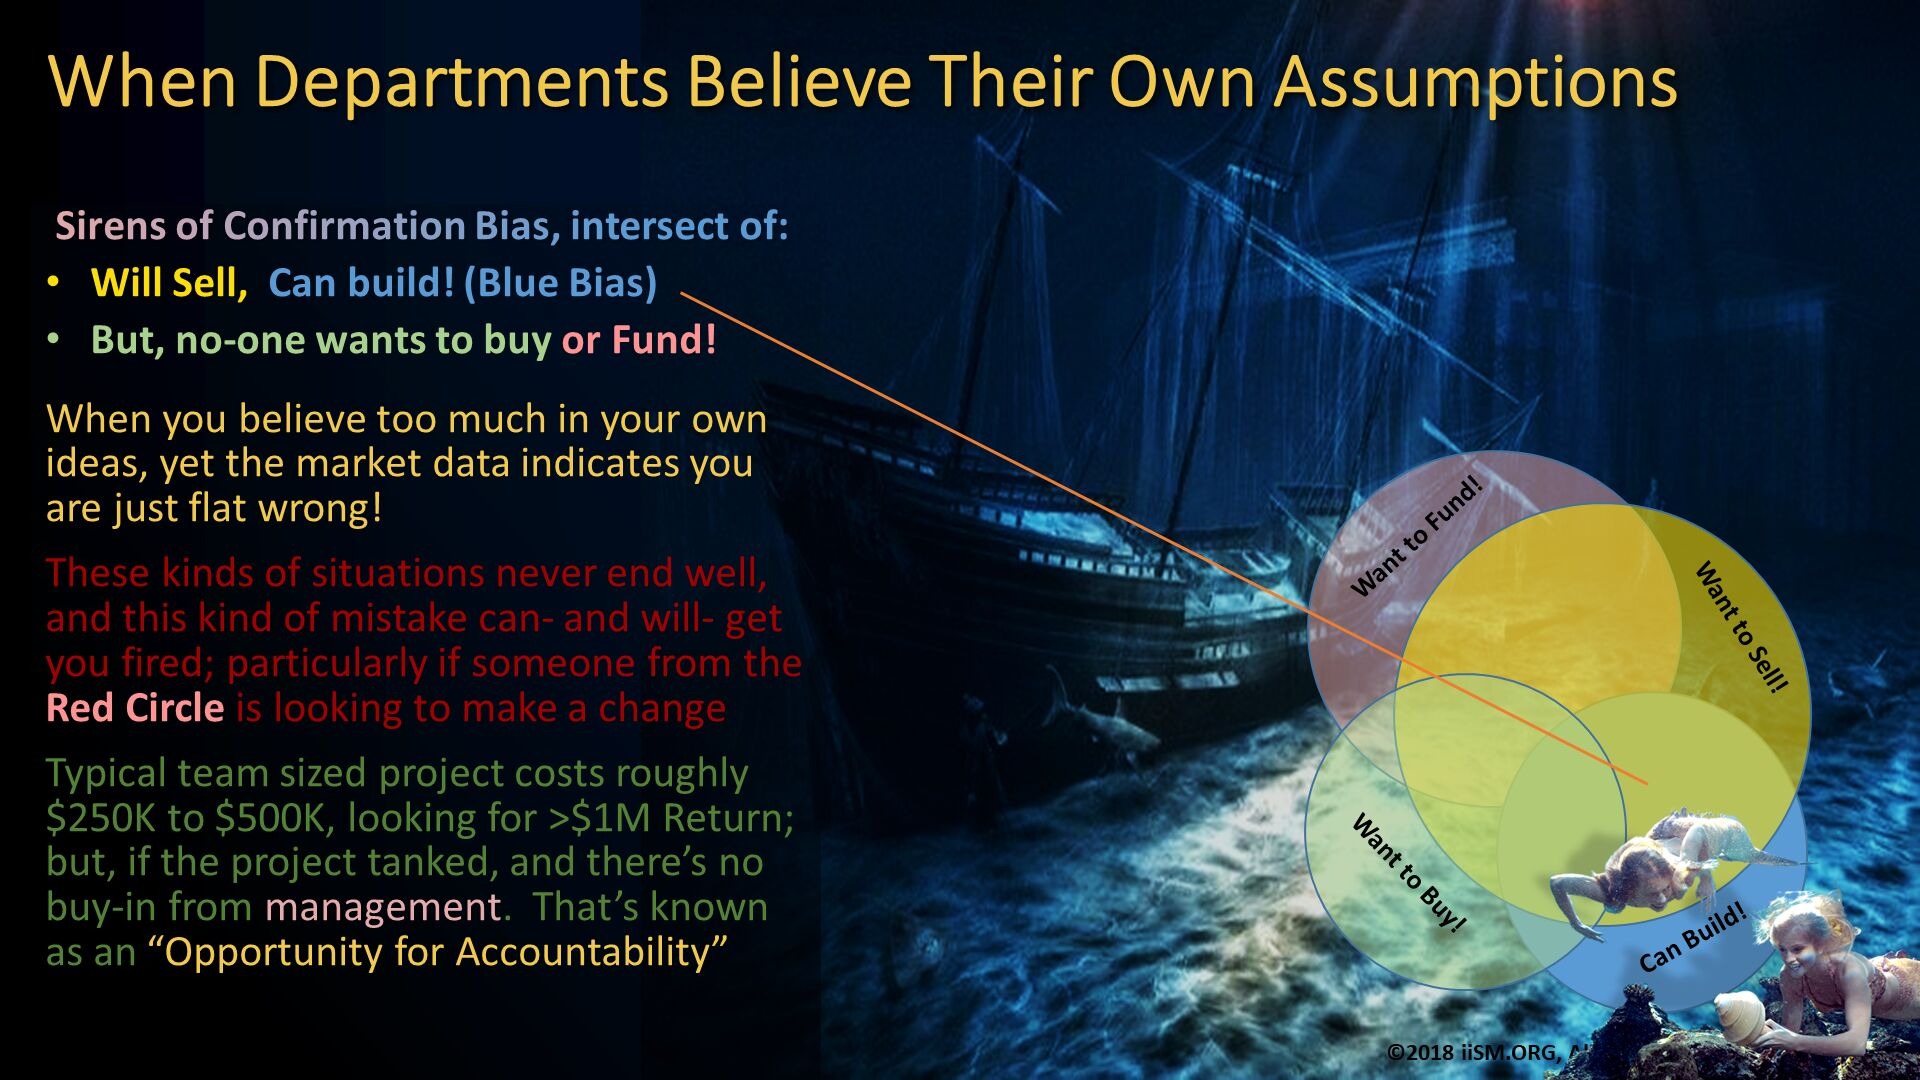 "When Departments Believe Their Own Assumptions.  Sirens of Confirmation Bias, intersect of: Will Sell,  Can build! (Blue Bias) But, no-one wants to buy or Fund! When you believe too much in your own ideas, yet the market data indicates you are just flat wrong! These kinds of situations never end well, and this kind of mistake can- and will- get you fired; particularly if someone from the Red Circle is looking to make a change Typical team sized project costs roughly $250K to $500K, looking for >$1M Return; but, if the project tanked, and there's no buy-in from management.  That's known as an ""Opportunity for Accountability""."